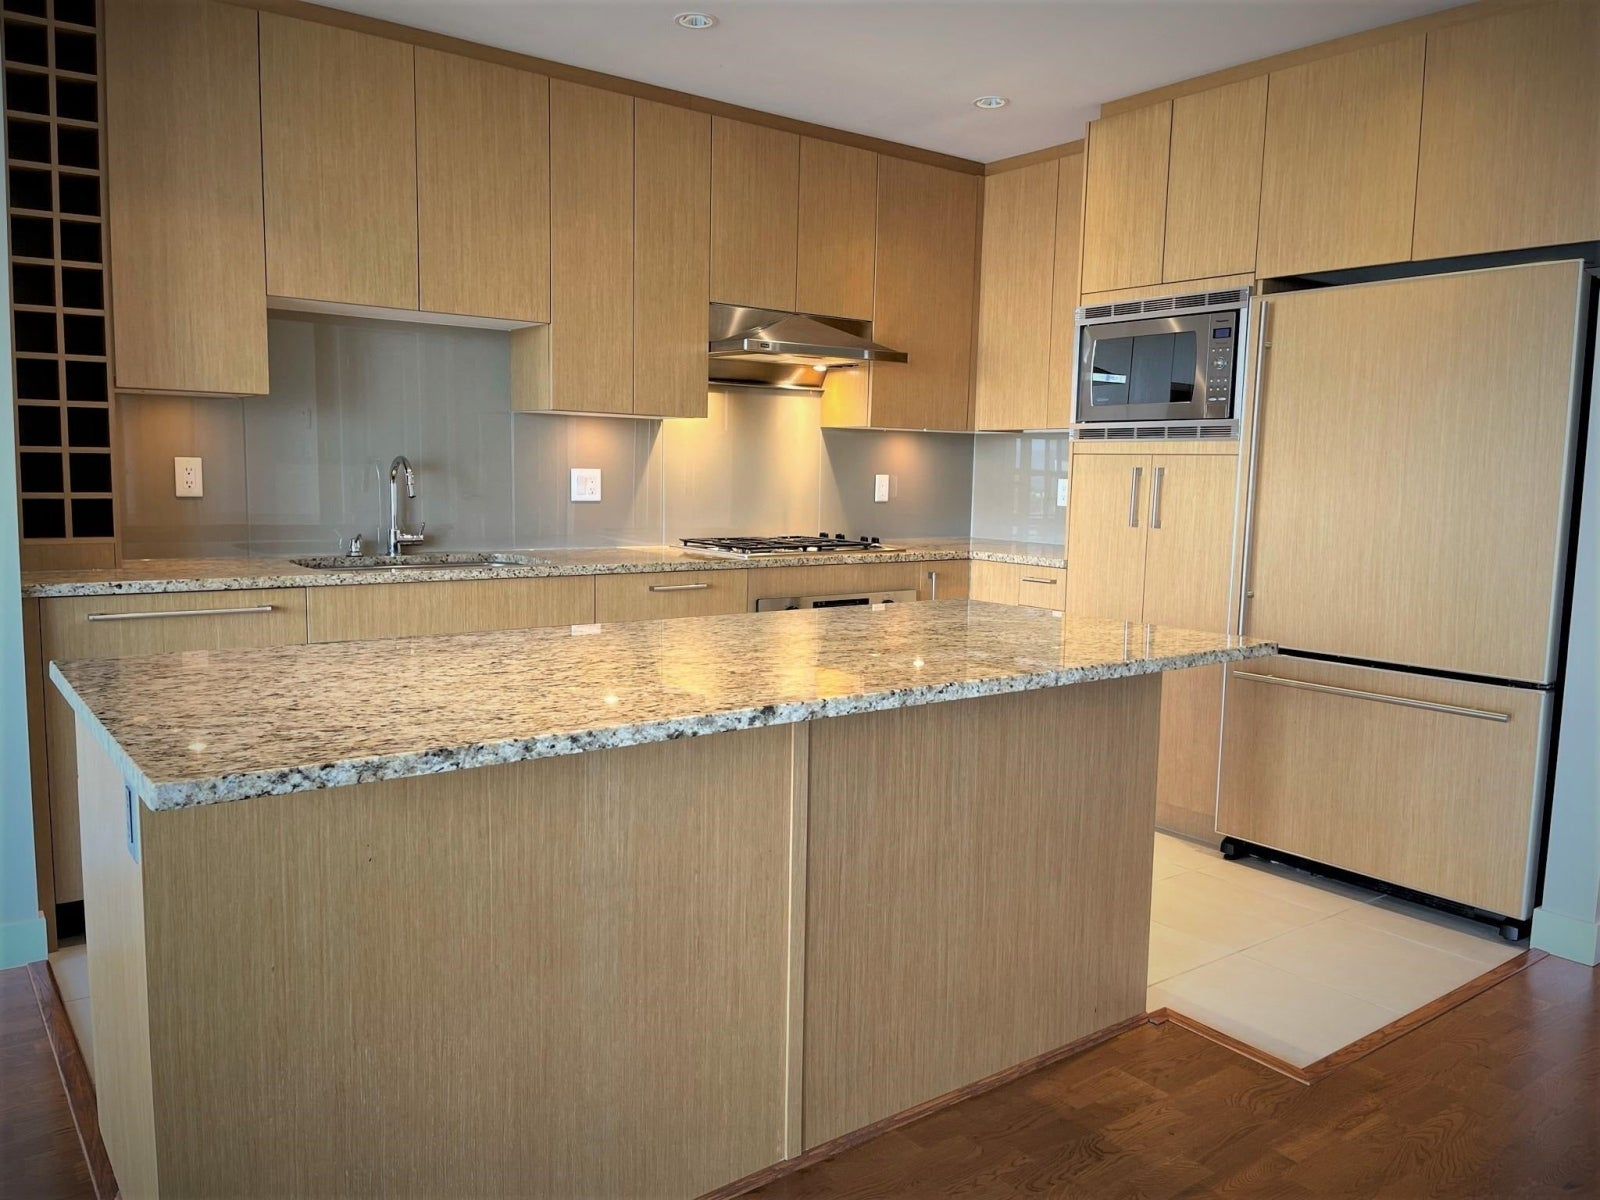 803 1333 W 11TH AVENUE - Fairview VW Apartment/Condo for sale, 2 Bedrooms (R2616288) #16